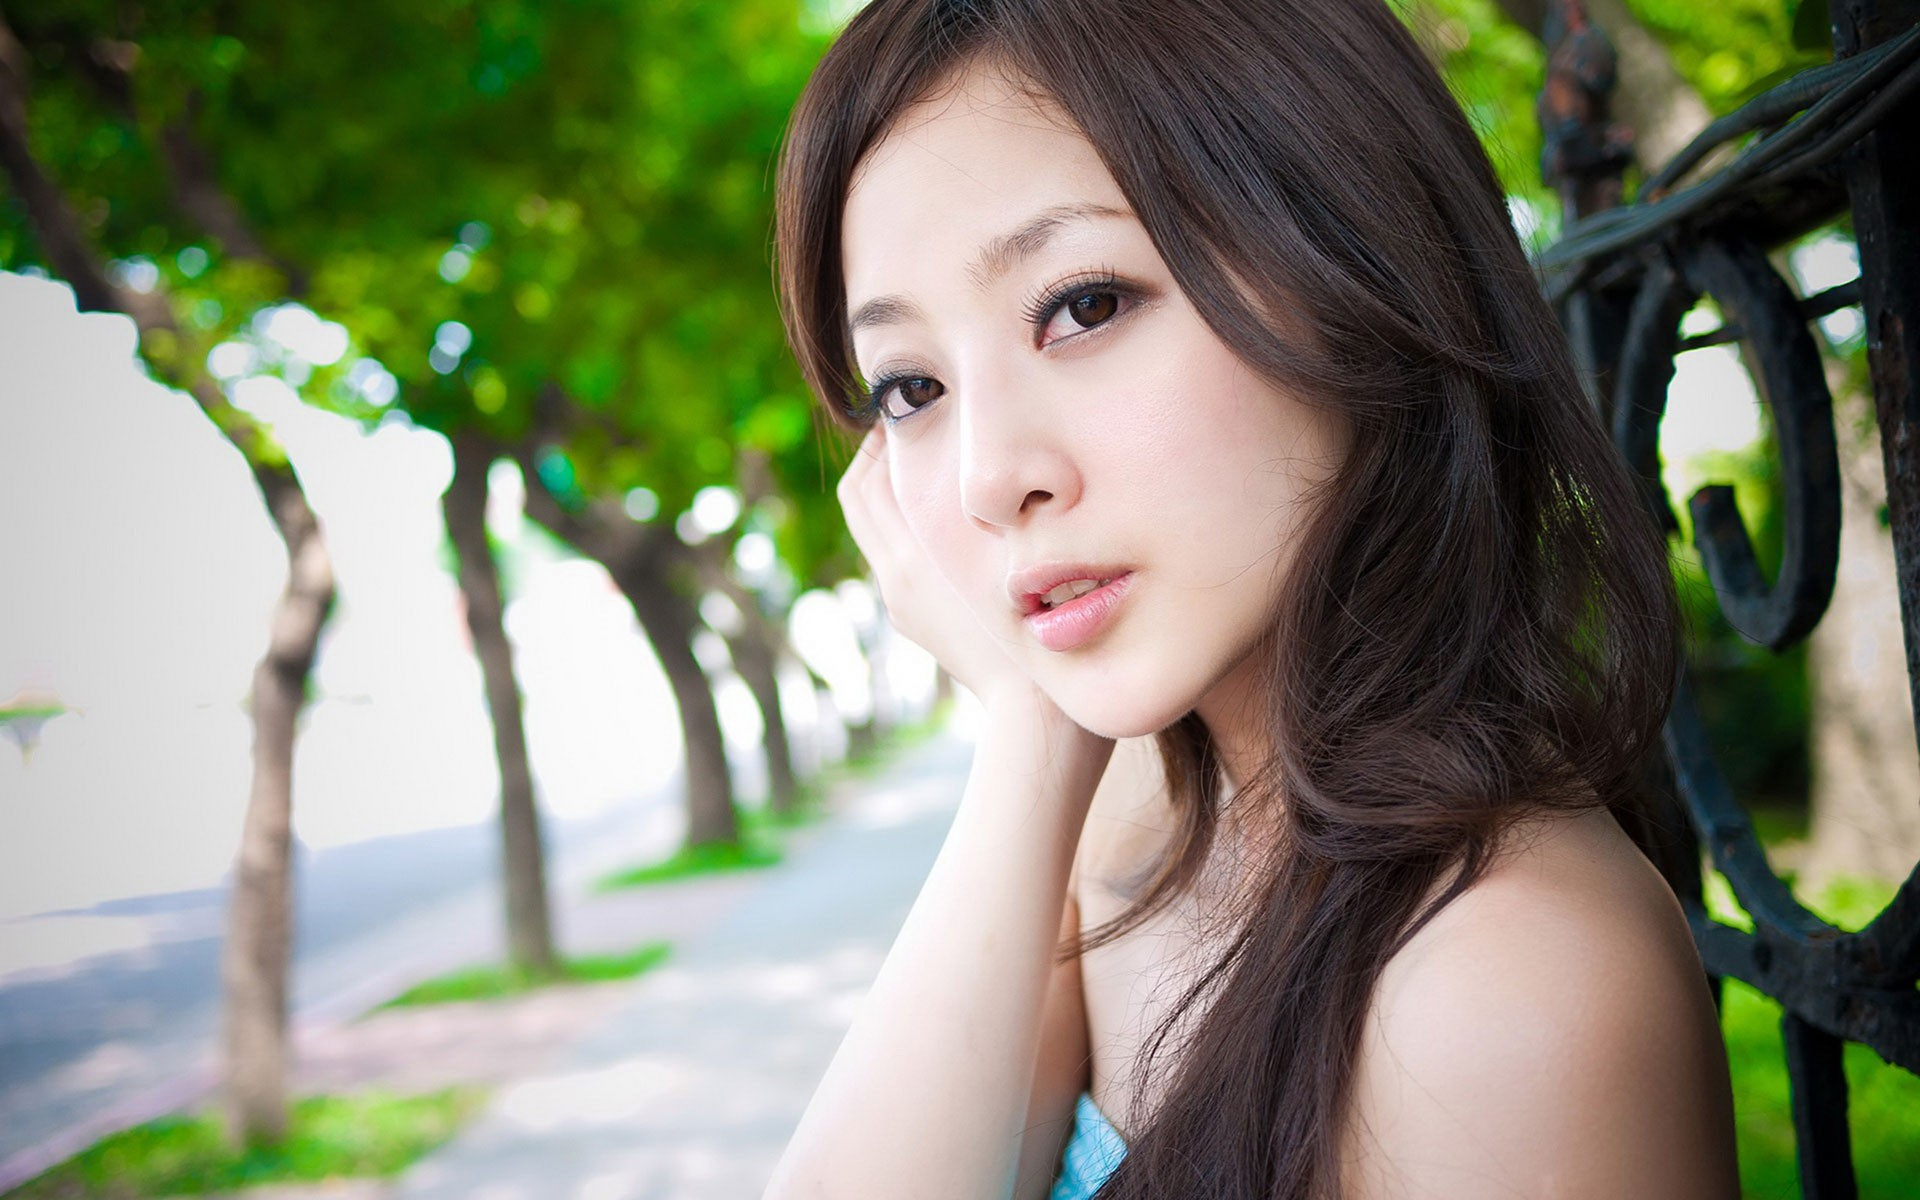 moshannon asian girl personals Moshannon's best free dating site 100% free online dating for moshannon singles at mingle2com our free personal ads are full of single women and men in moshannon looking for serious relationships, a little online flirtation, or new friends to go out with.